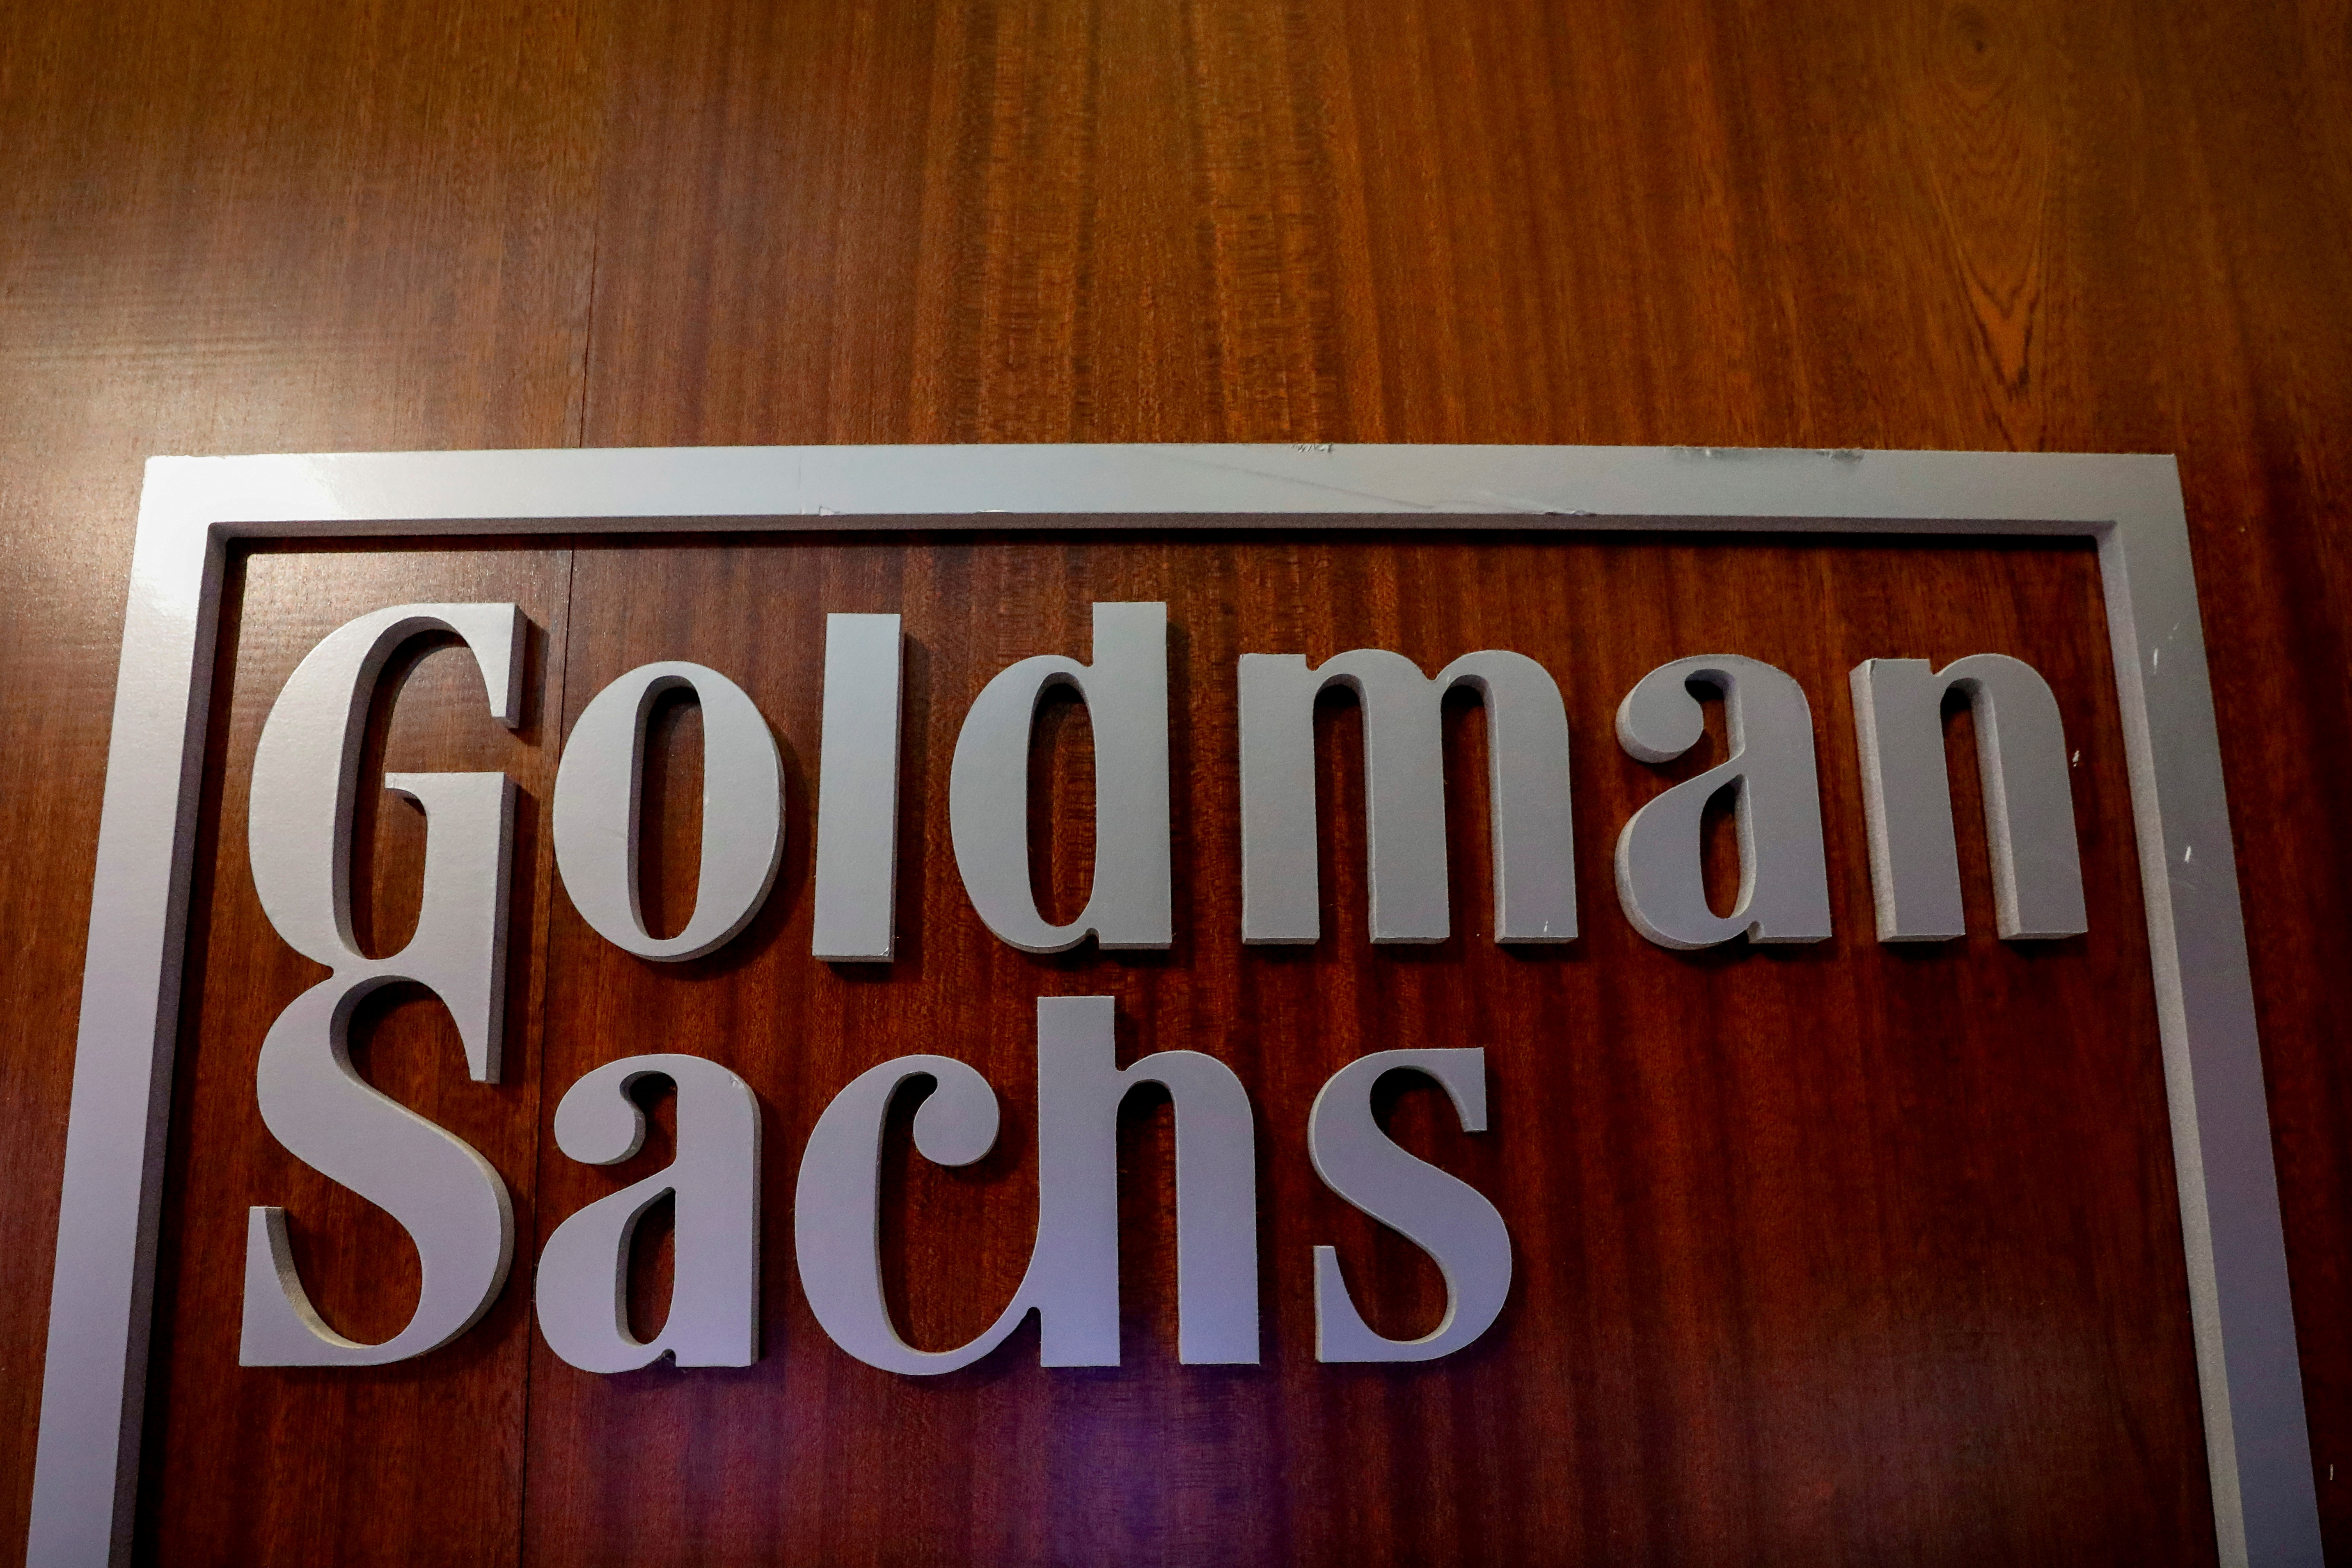 The Goldman Sachs company logo is seen in the company's space on the floor of the New York Stock Exchange in New York, U.S., April 17, 2018. REUTERS/Brendan McDermid/File Photo